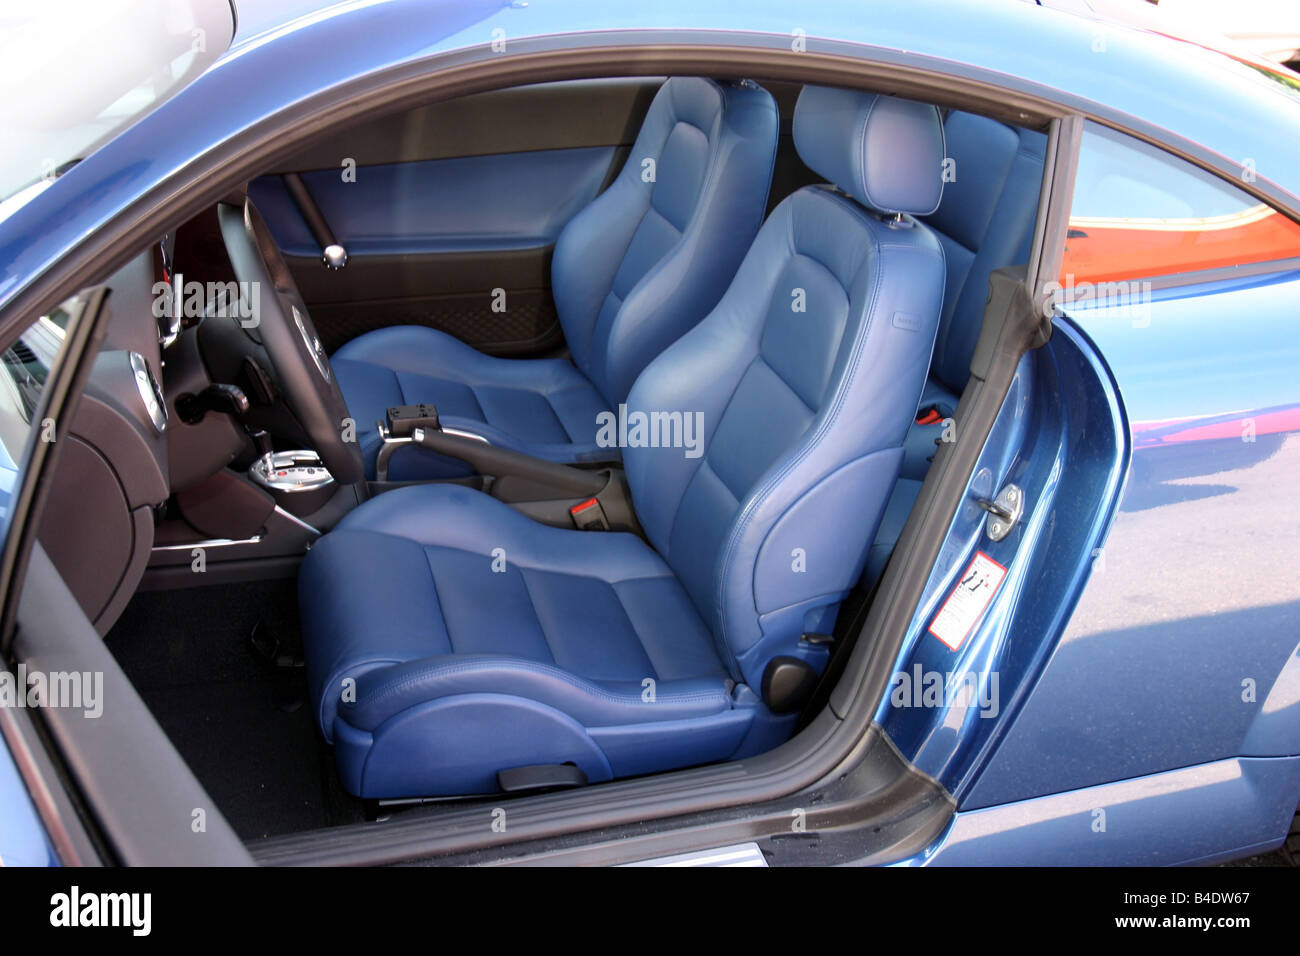 car audi tt 3 2 coupe roadster model year 2003 blue interior stock photo royalty free. Black Bedroom Furniture Sets. Home Design Ideas